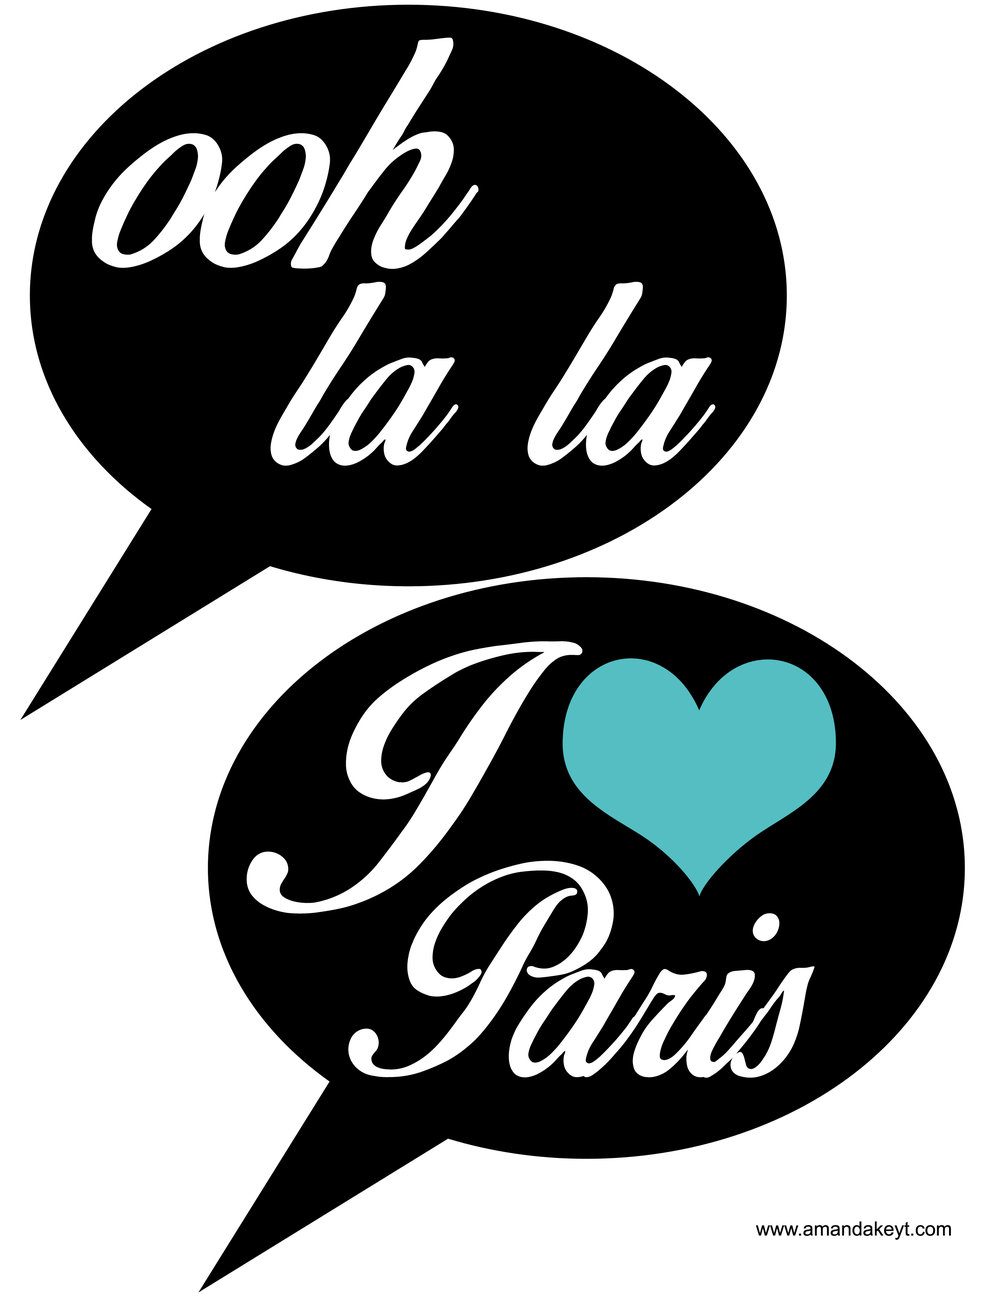 Teal Paris